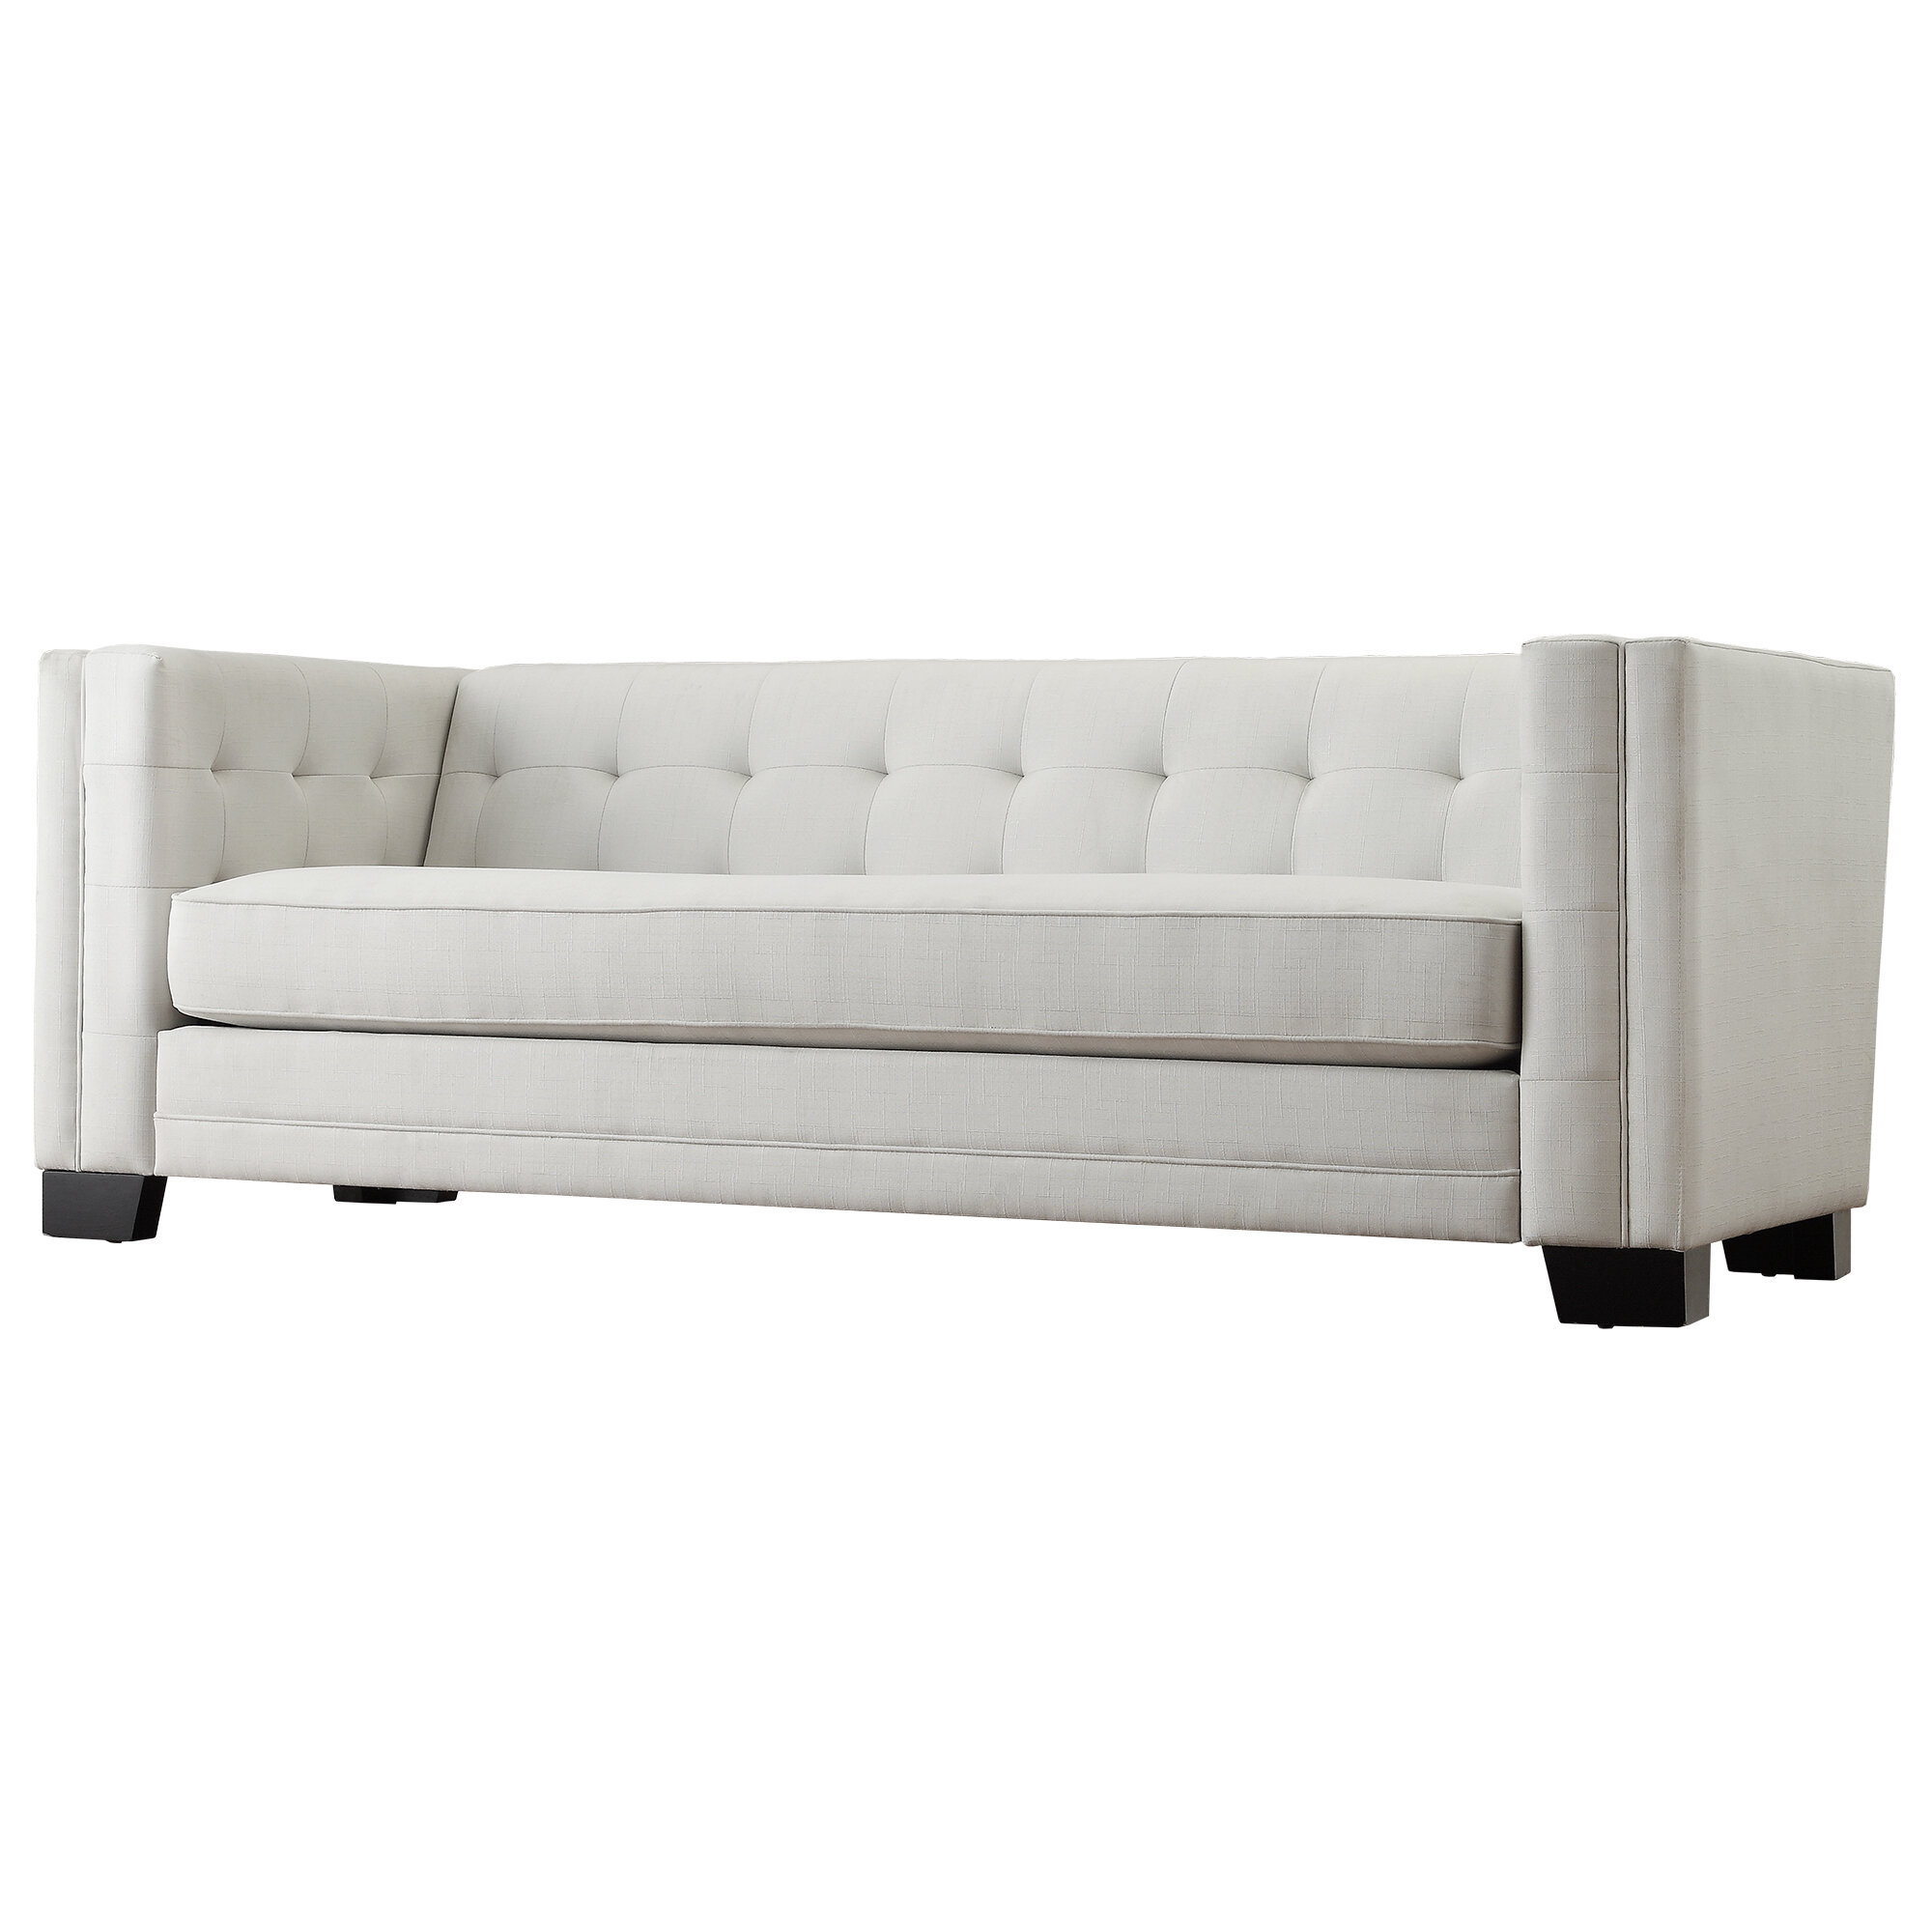 fontana products craftmaster arms traditional couch with flared furniture tufted button by sofa wide